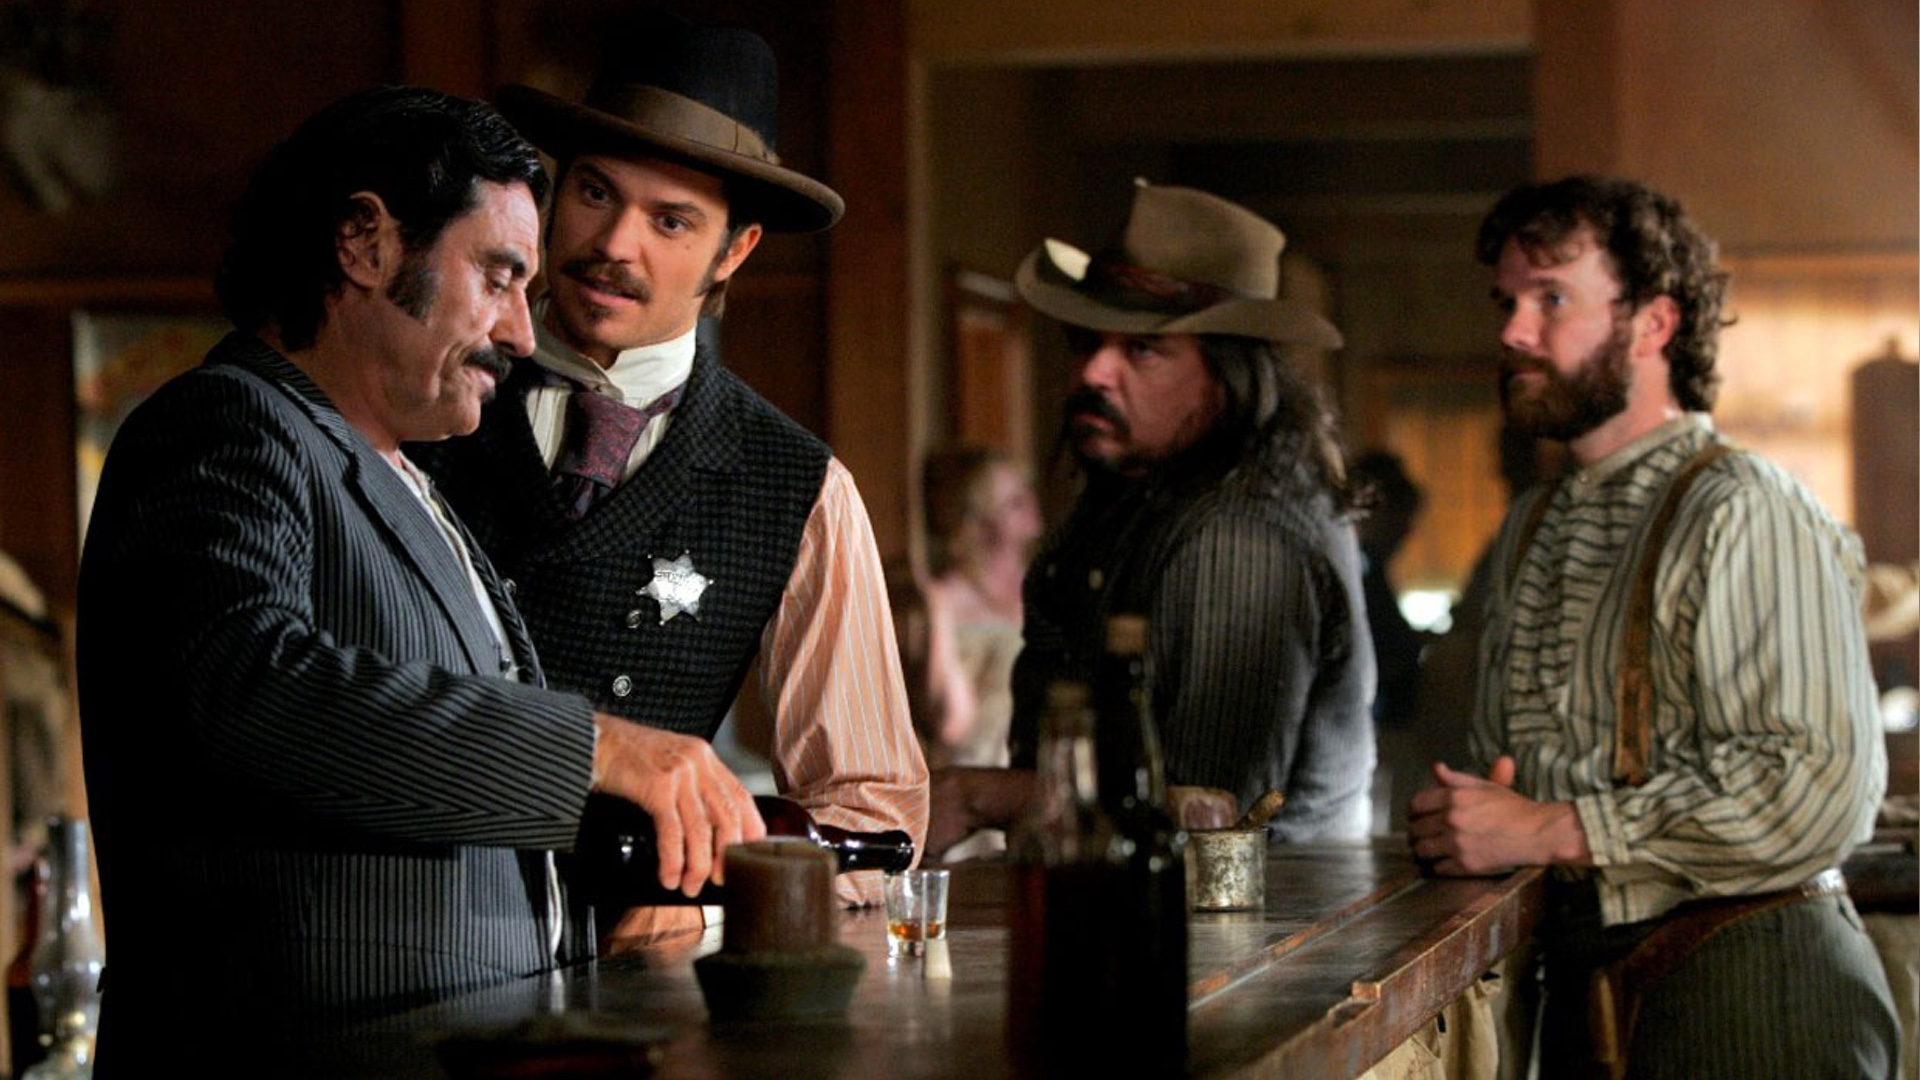 hbos-deadwood-movie-is-one-big-step-closer-to-production-which-could-begin-in-october-social.jpg